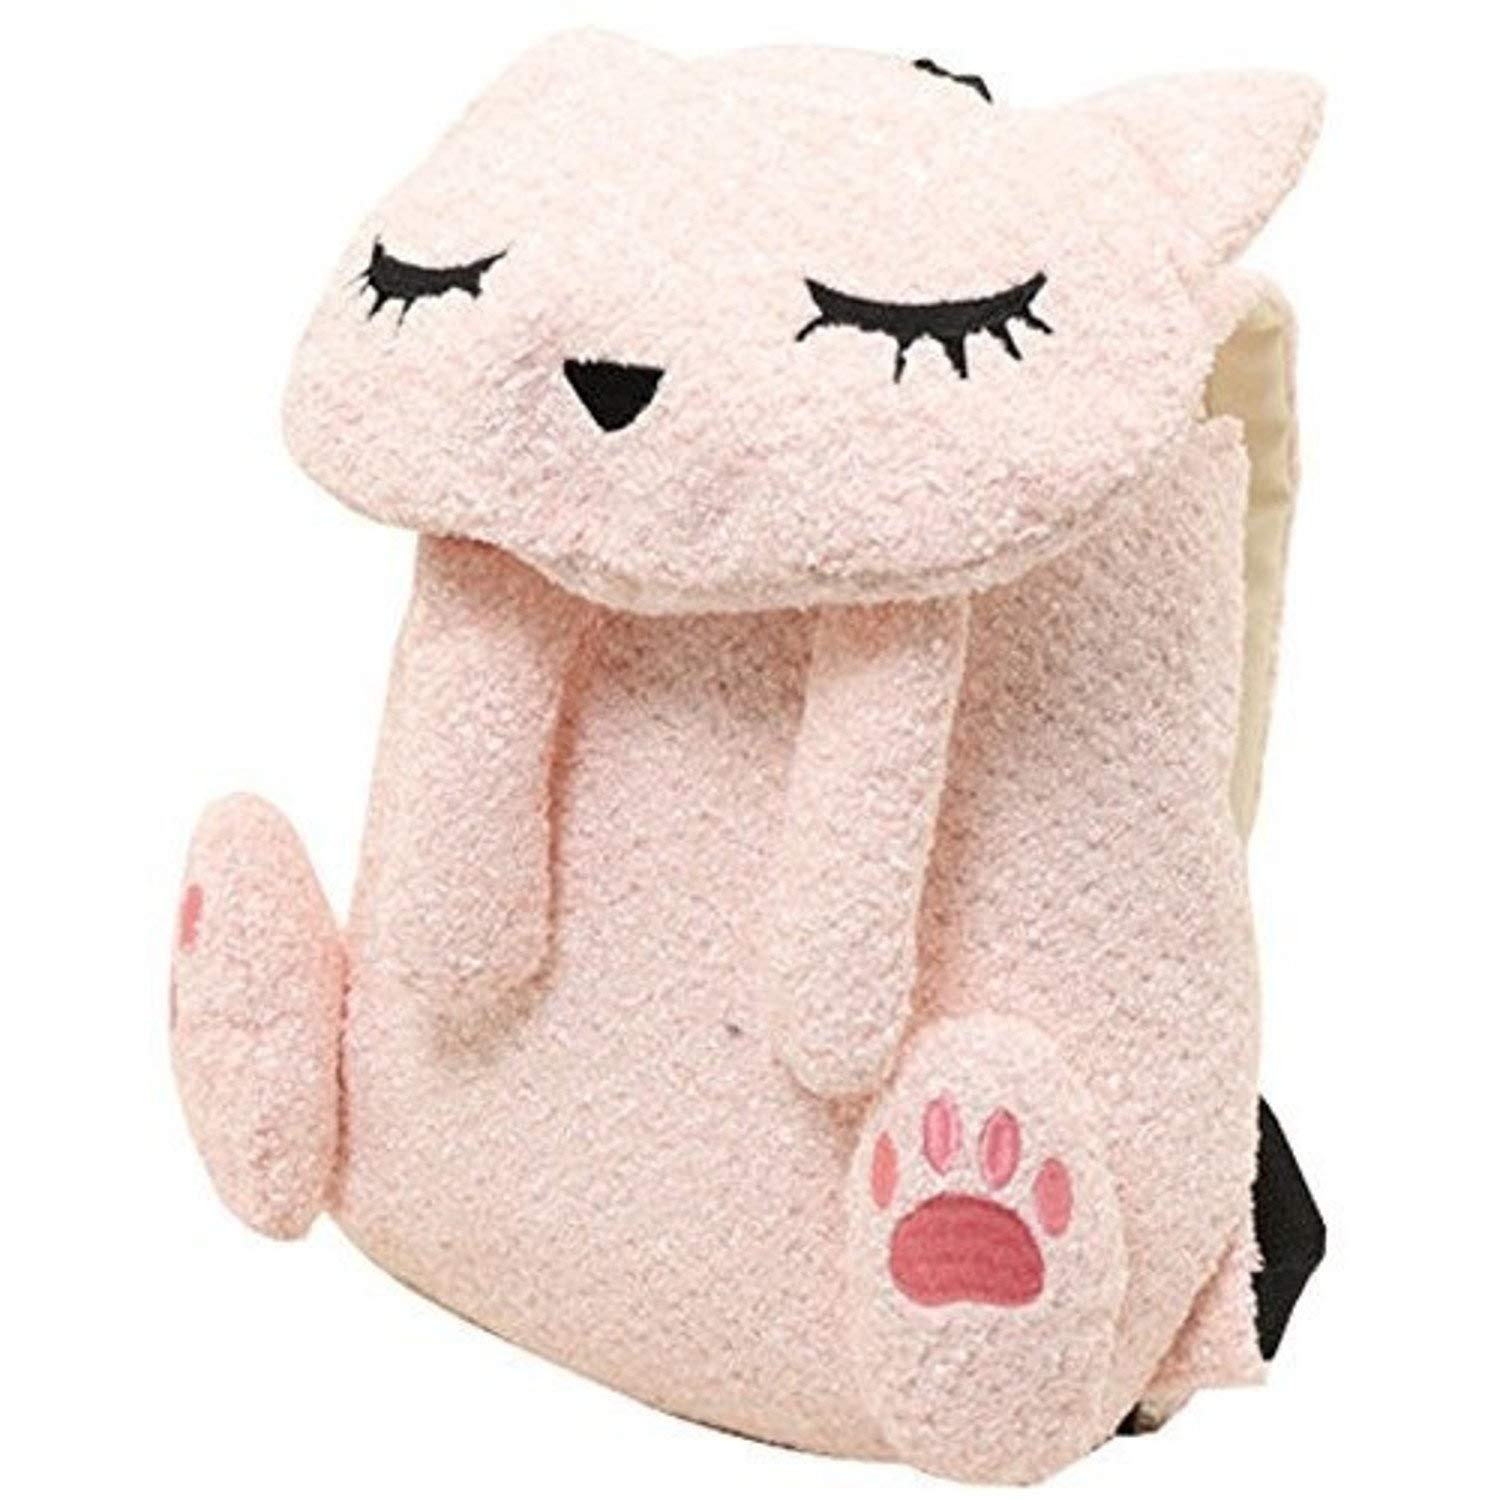 Pink Fluffy Cat Sailor Backpack School Bag 43x31cm  Osumashi Pooh Chan Cat – Black P17105015 from Japan